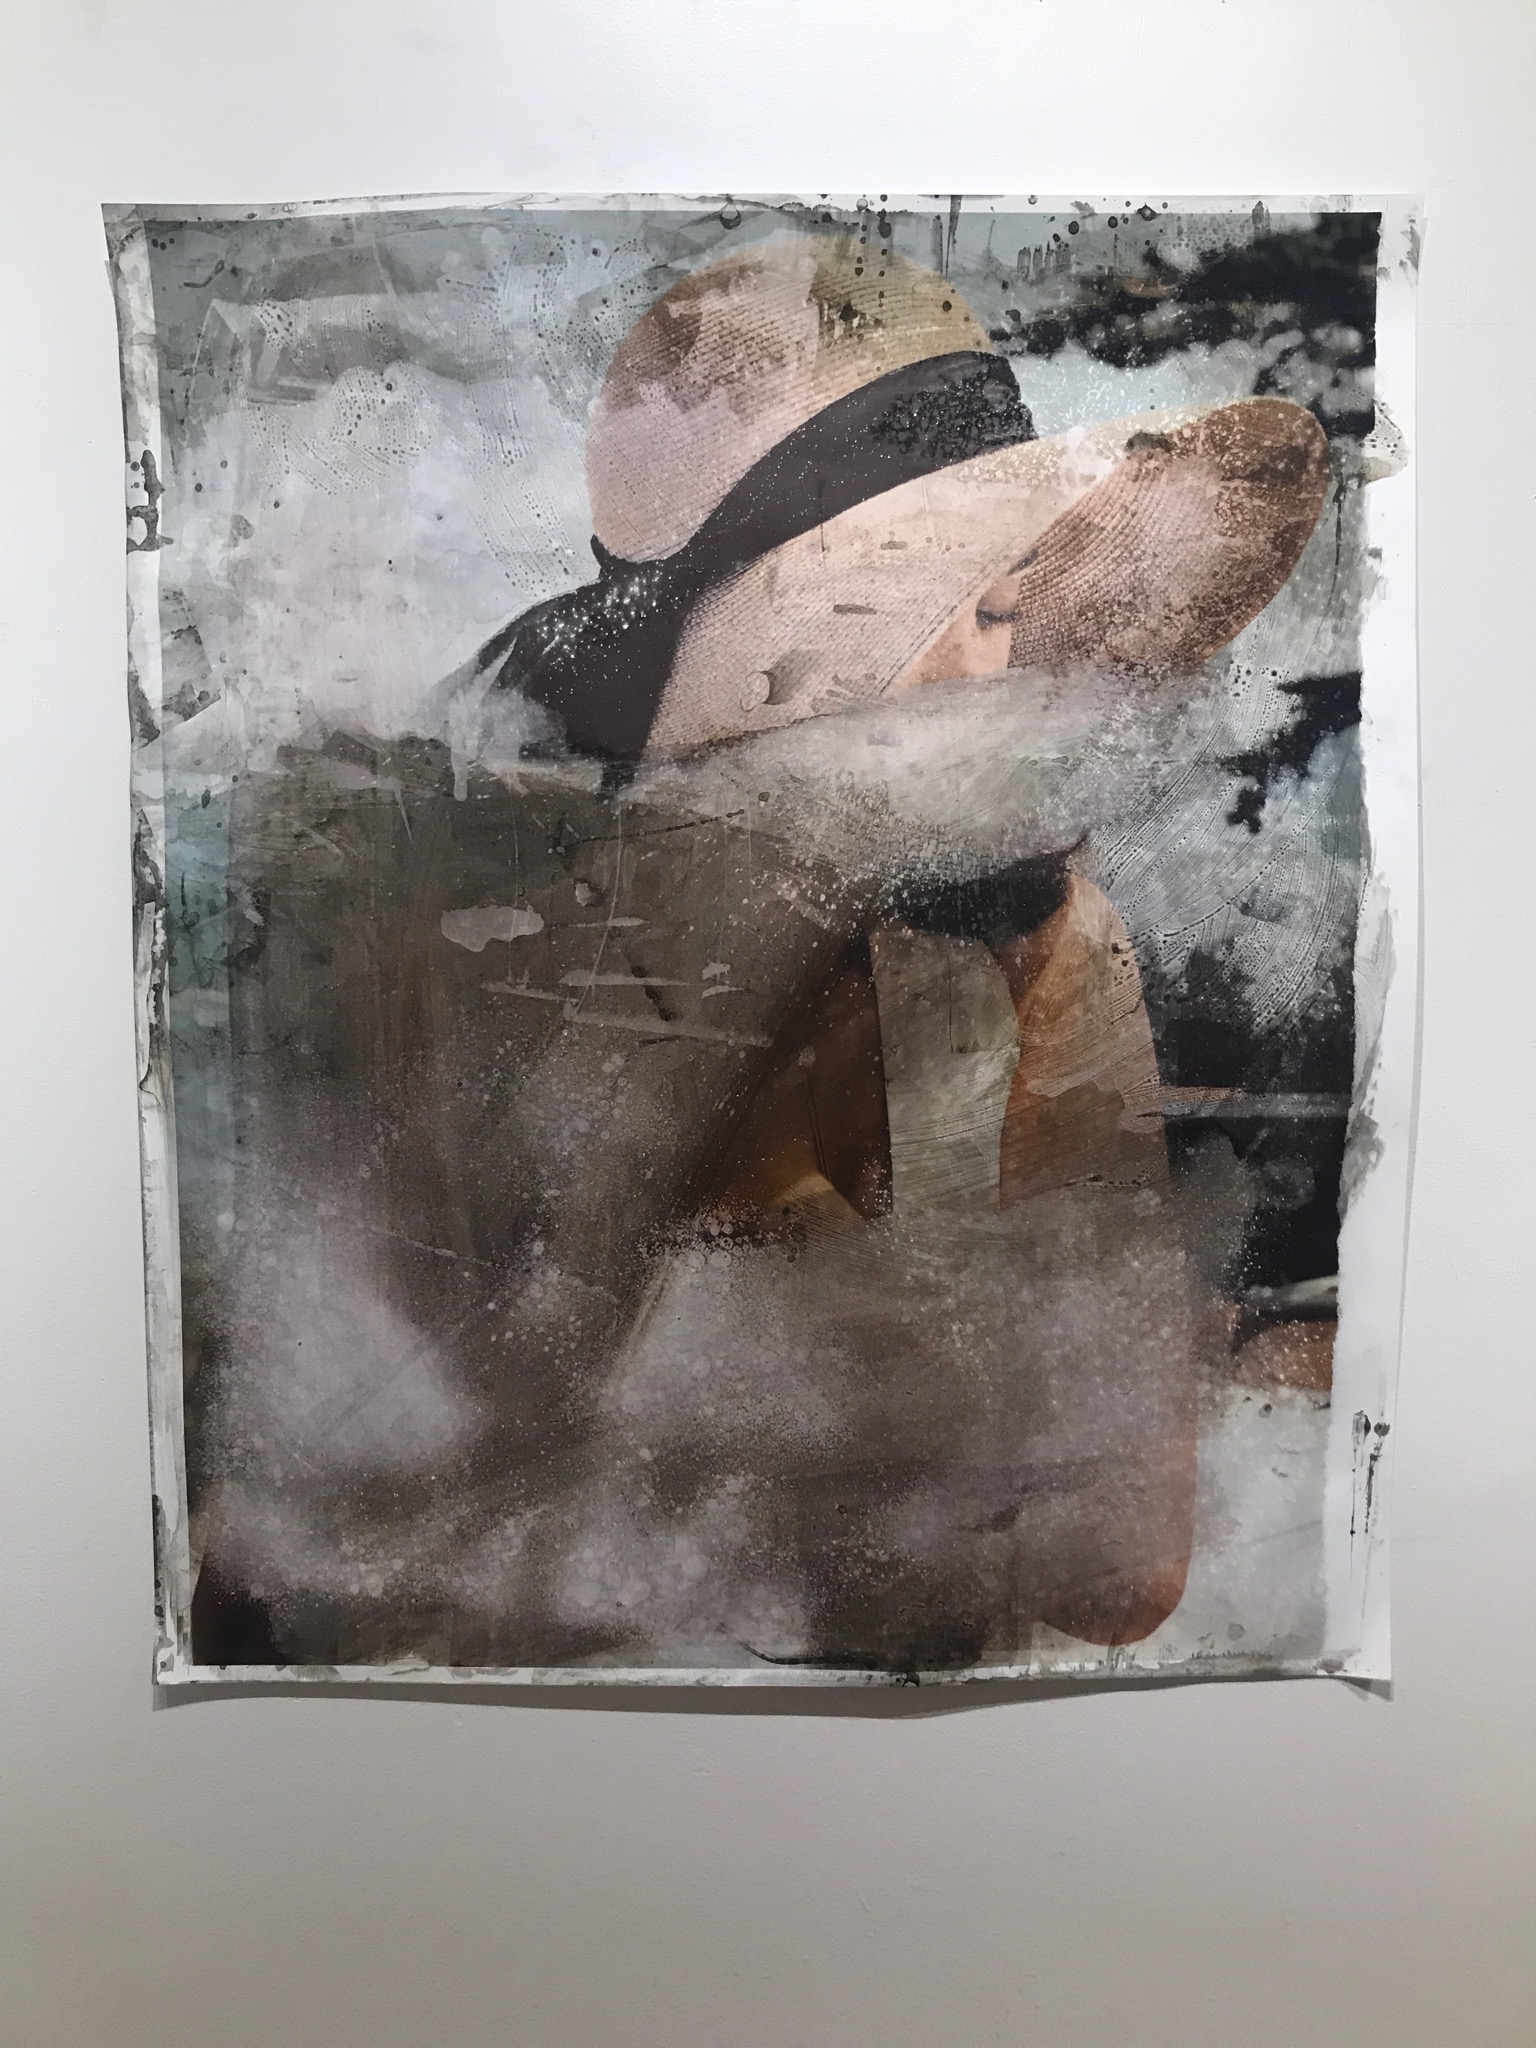 An Object of Desire   2017  41.5 x 36 in.  Citra solv on magazine, nail polish remover, window cleaner and bleach on photo paper